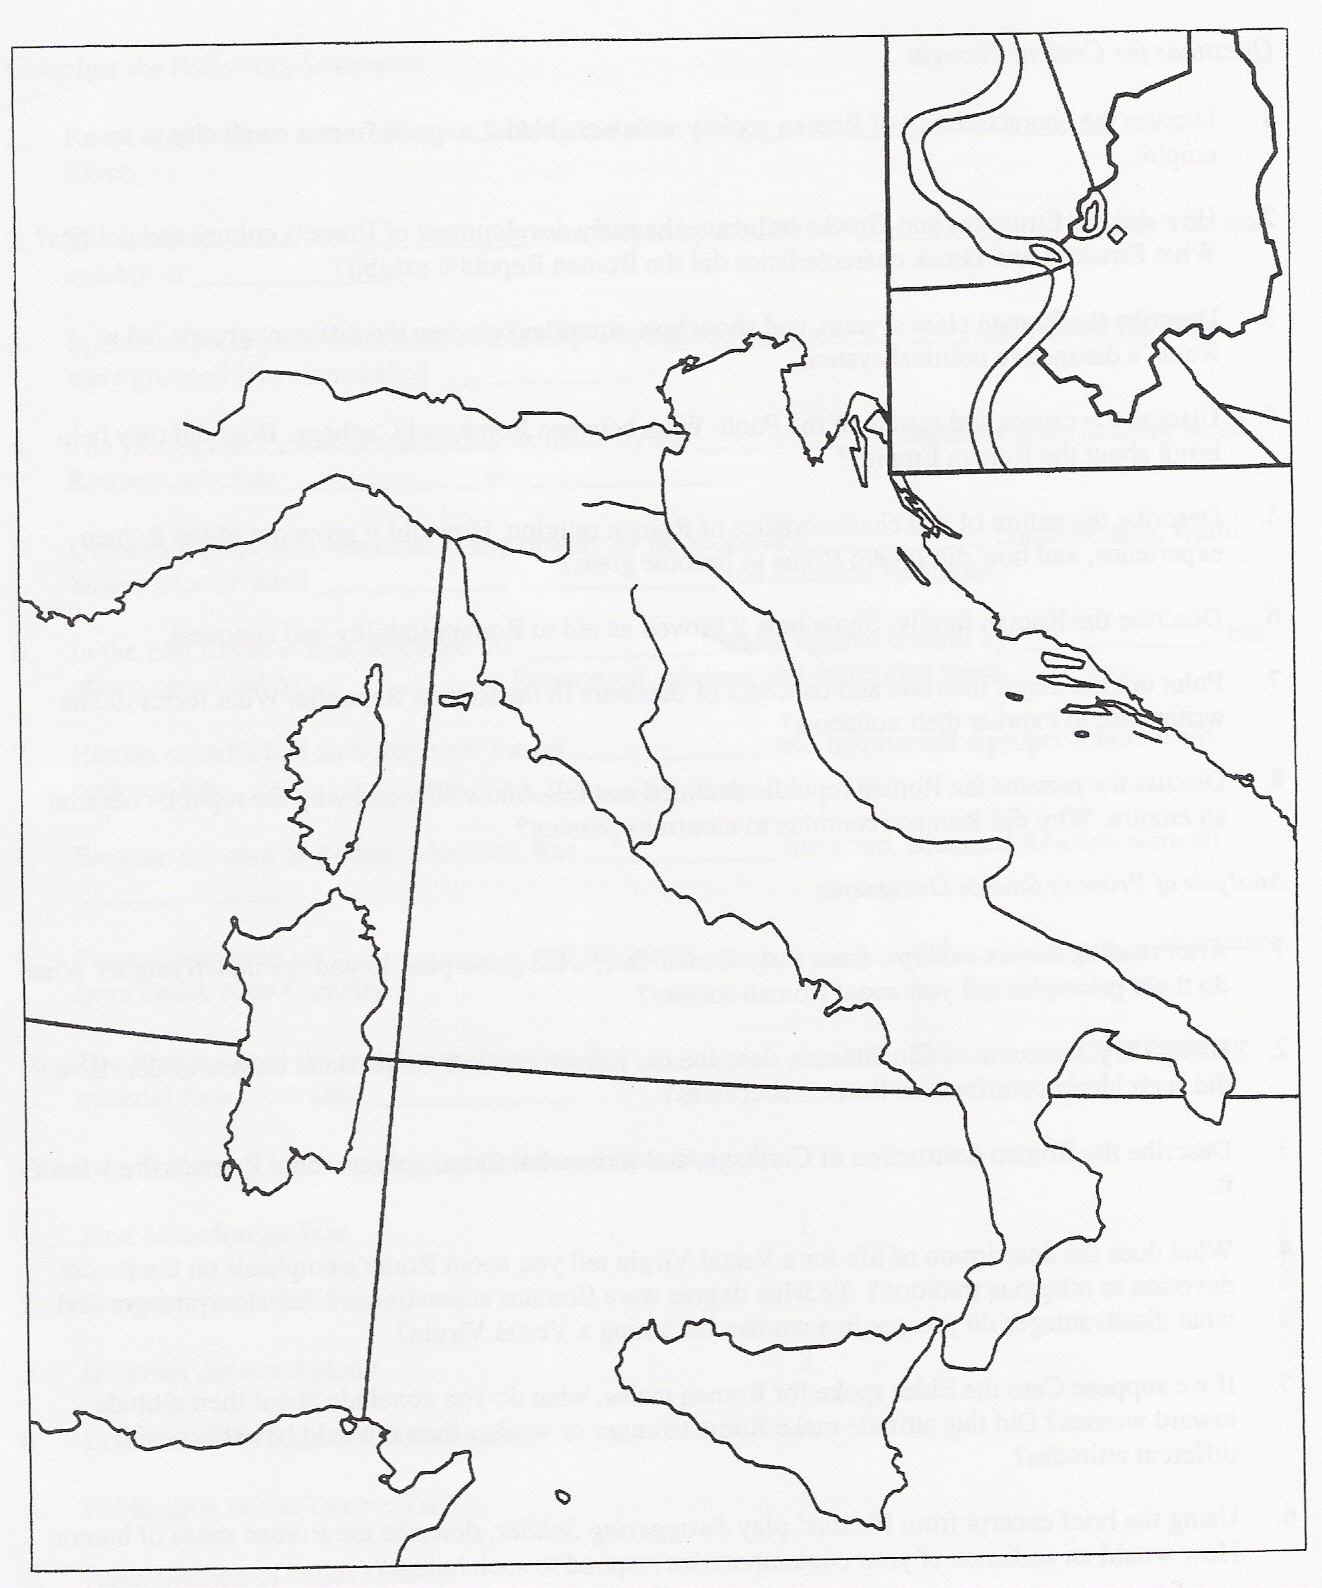 mr morris world history 9 website 2012 2013 early rome and the Simple Map of Italy mr morris world history 9 website 2012 2013